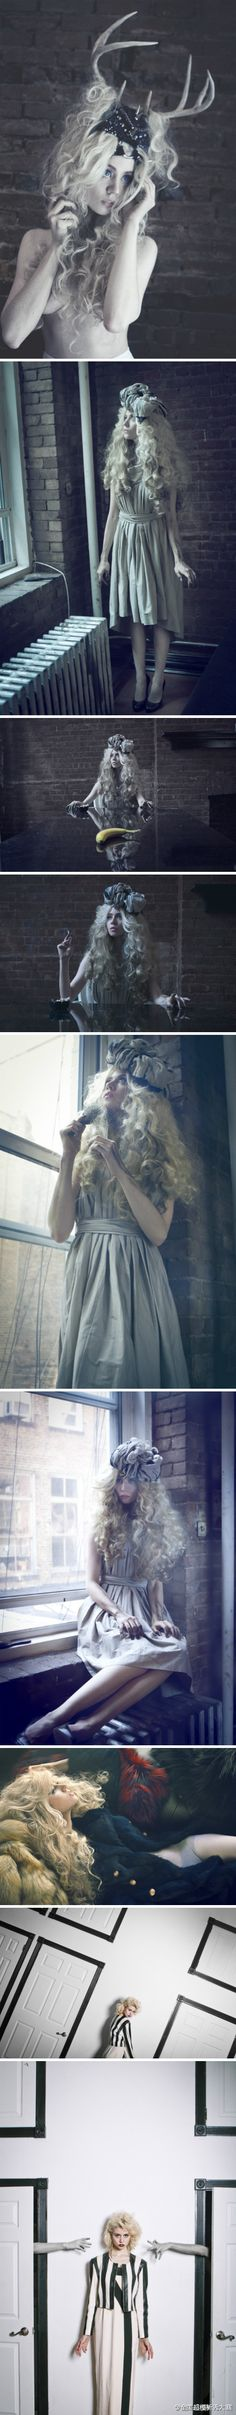 Allison Harvard from ANTM